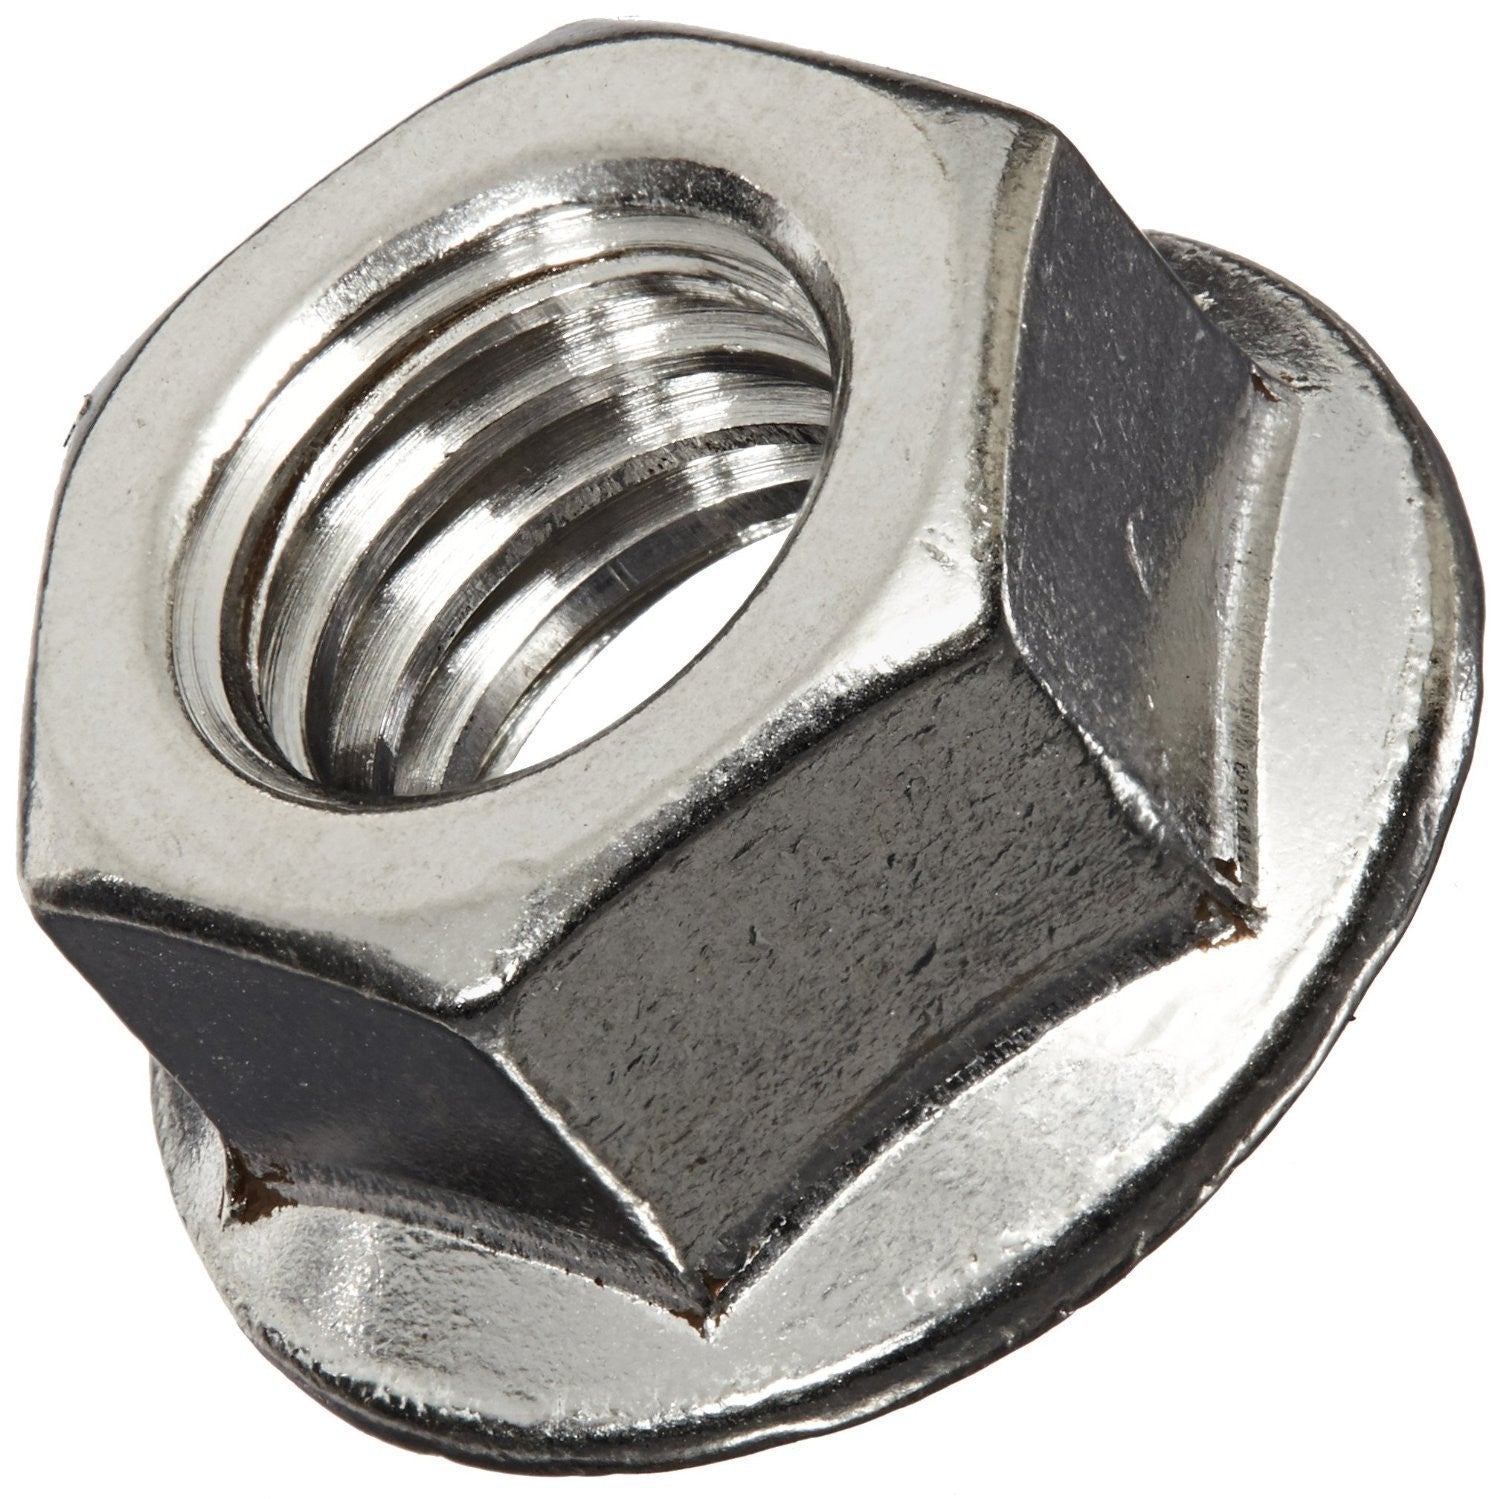 Stainless Steel Hex Flange Nut - RKL Tools & Hardware  - 1